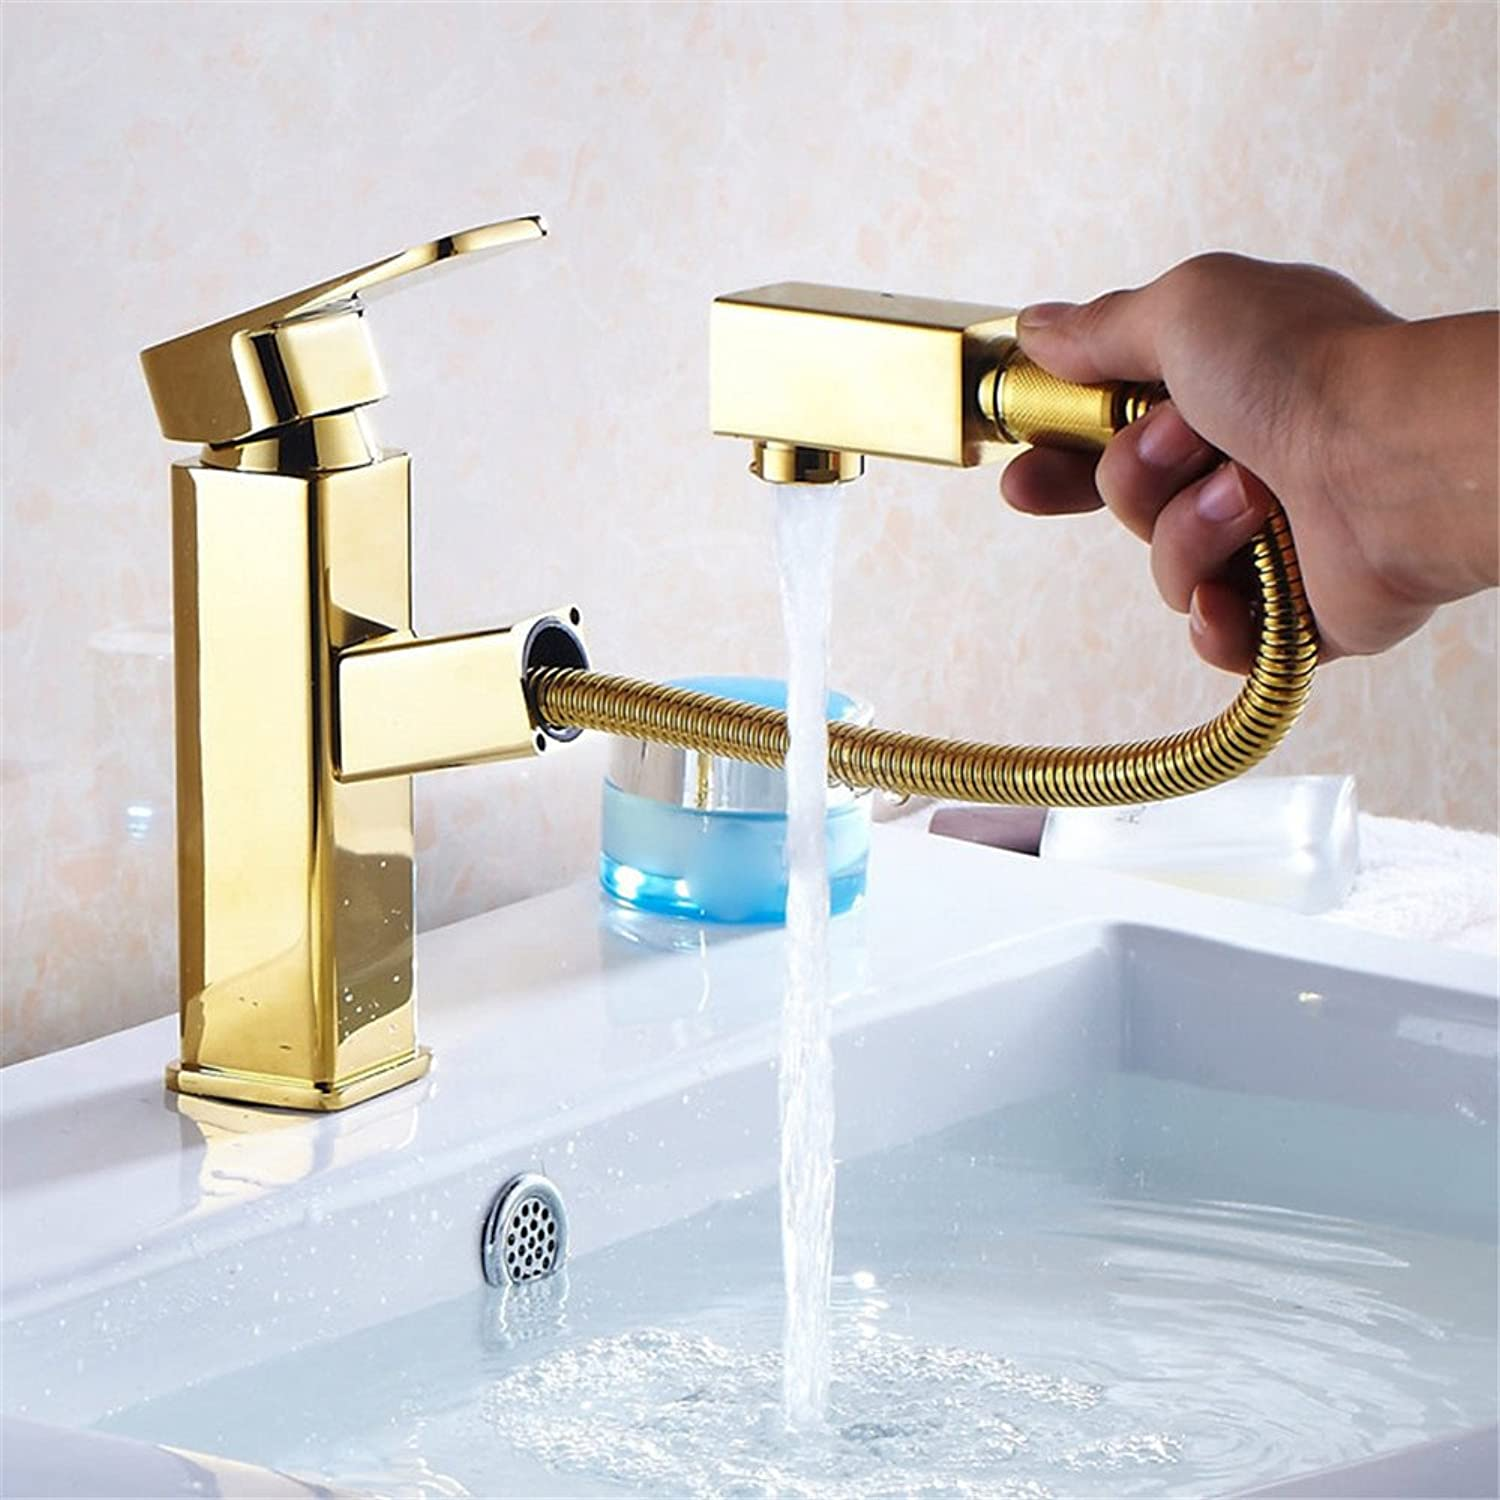 Hlluya Professional Sink Mixer Tap Kitchen Faucet Sink basin faucet hot and cold taps full Brass gold plated faucet pull the faucet